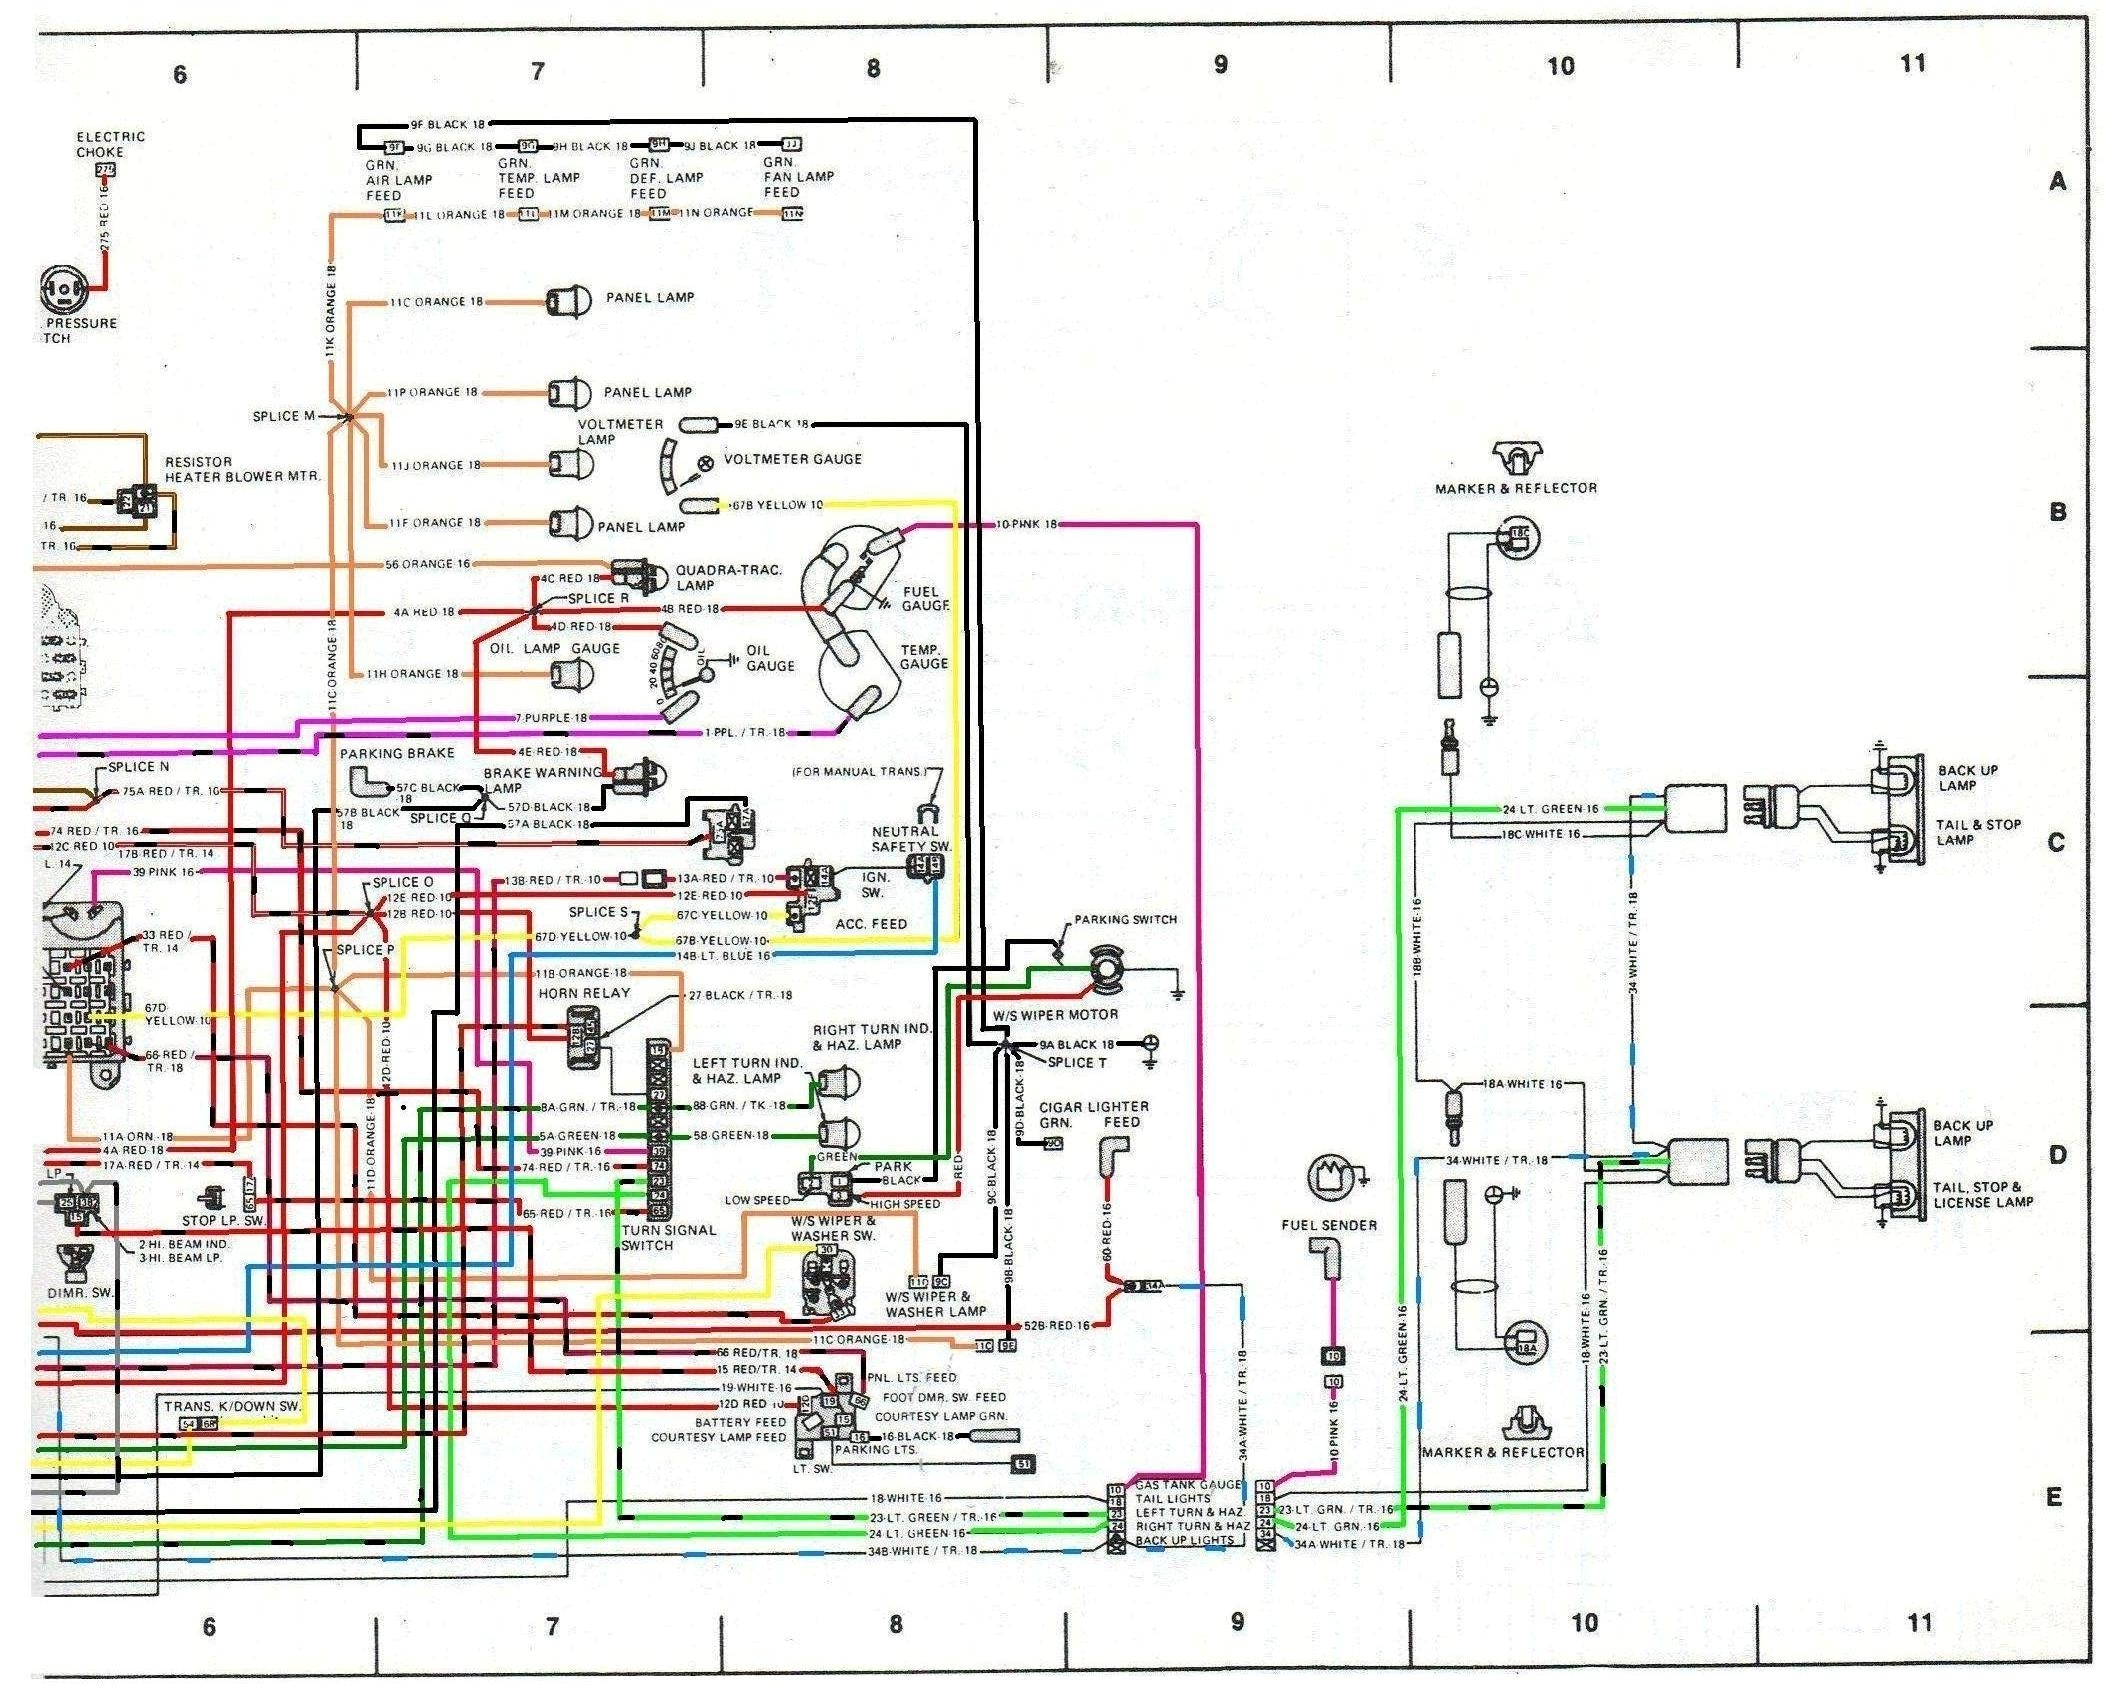 1984 Jeep Scrambler Wiring Diagram - wiring diagram boards-online -  boards-online.eugeniovazzano.itEugenio Vazzano